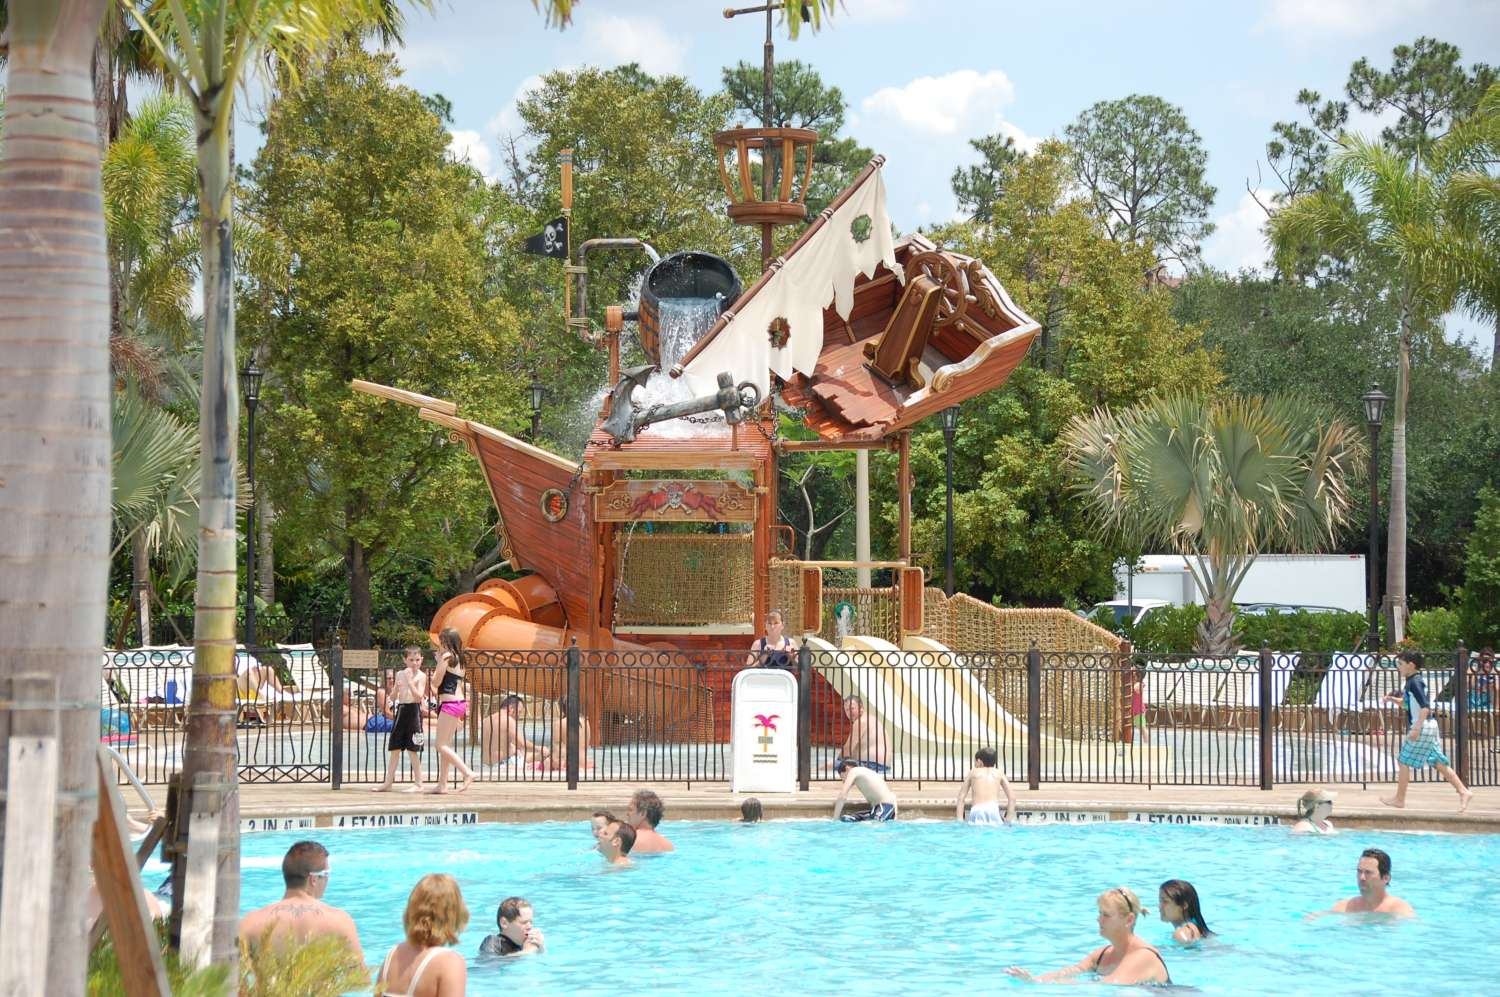 Disney's-Caribbean-Beach-Resort-Pirate-Ship-Splash-Zone.jpg